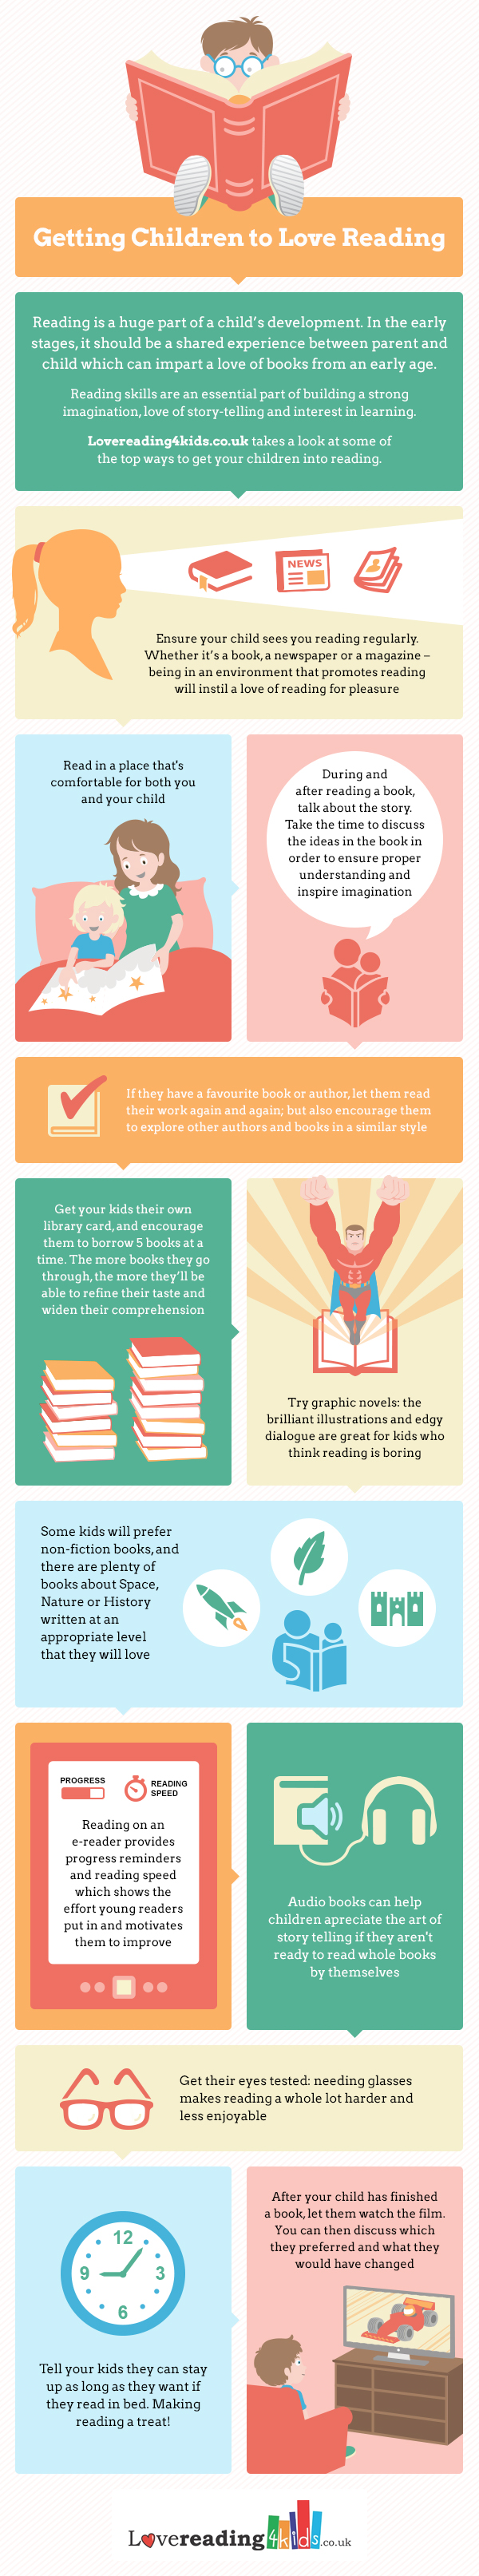 How to encourage children to #read - #infographic